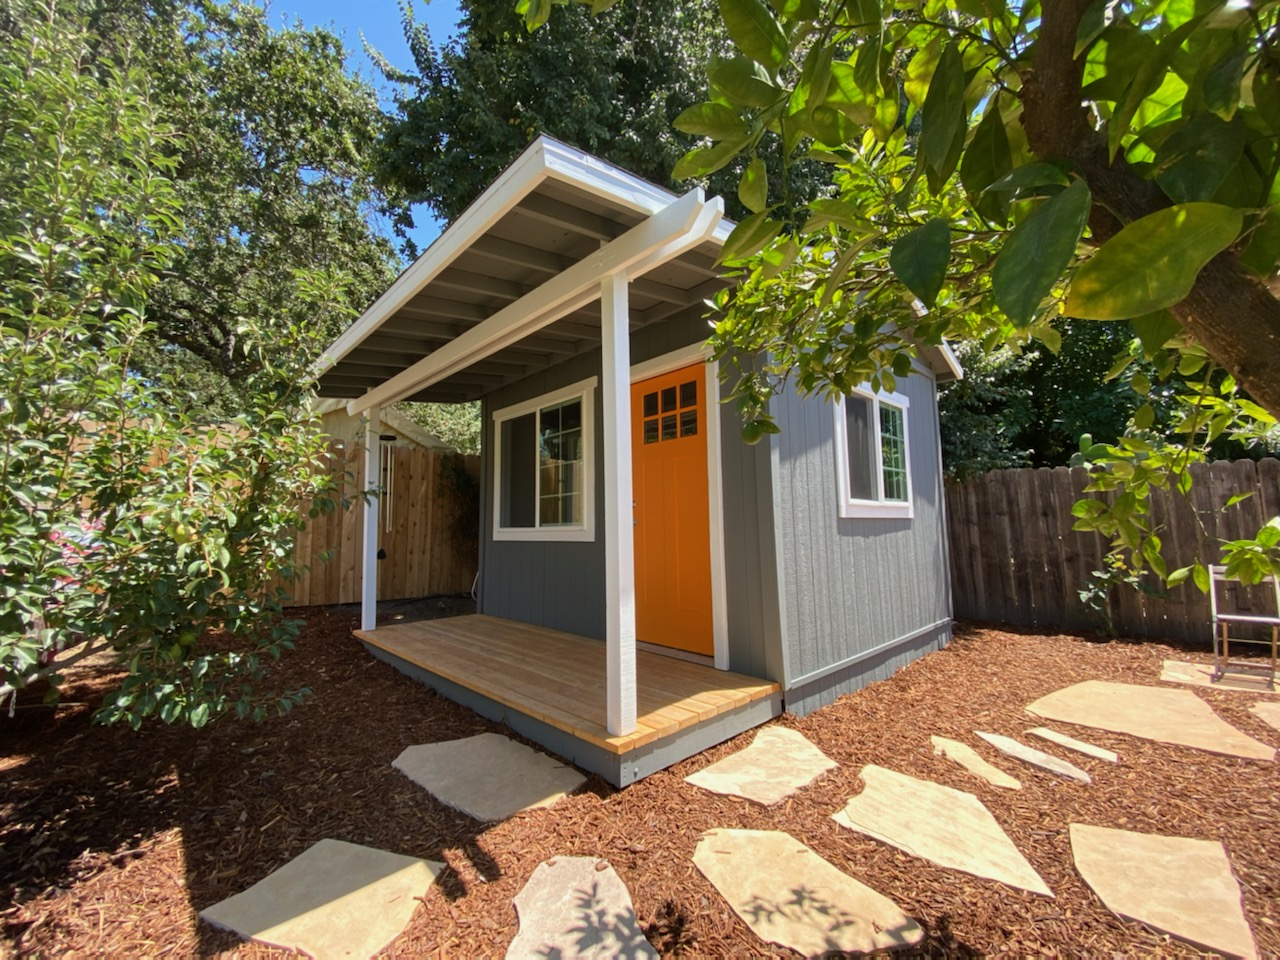 10x12' Office Shed with Porch